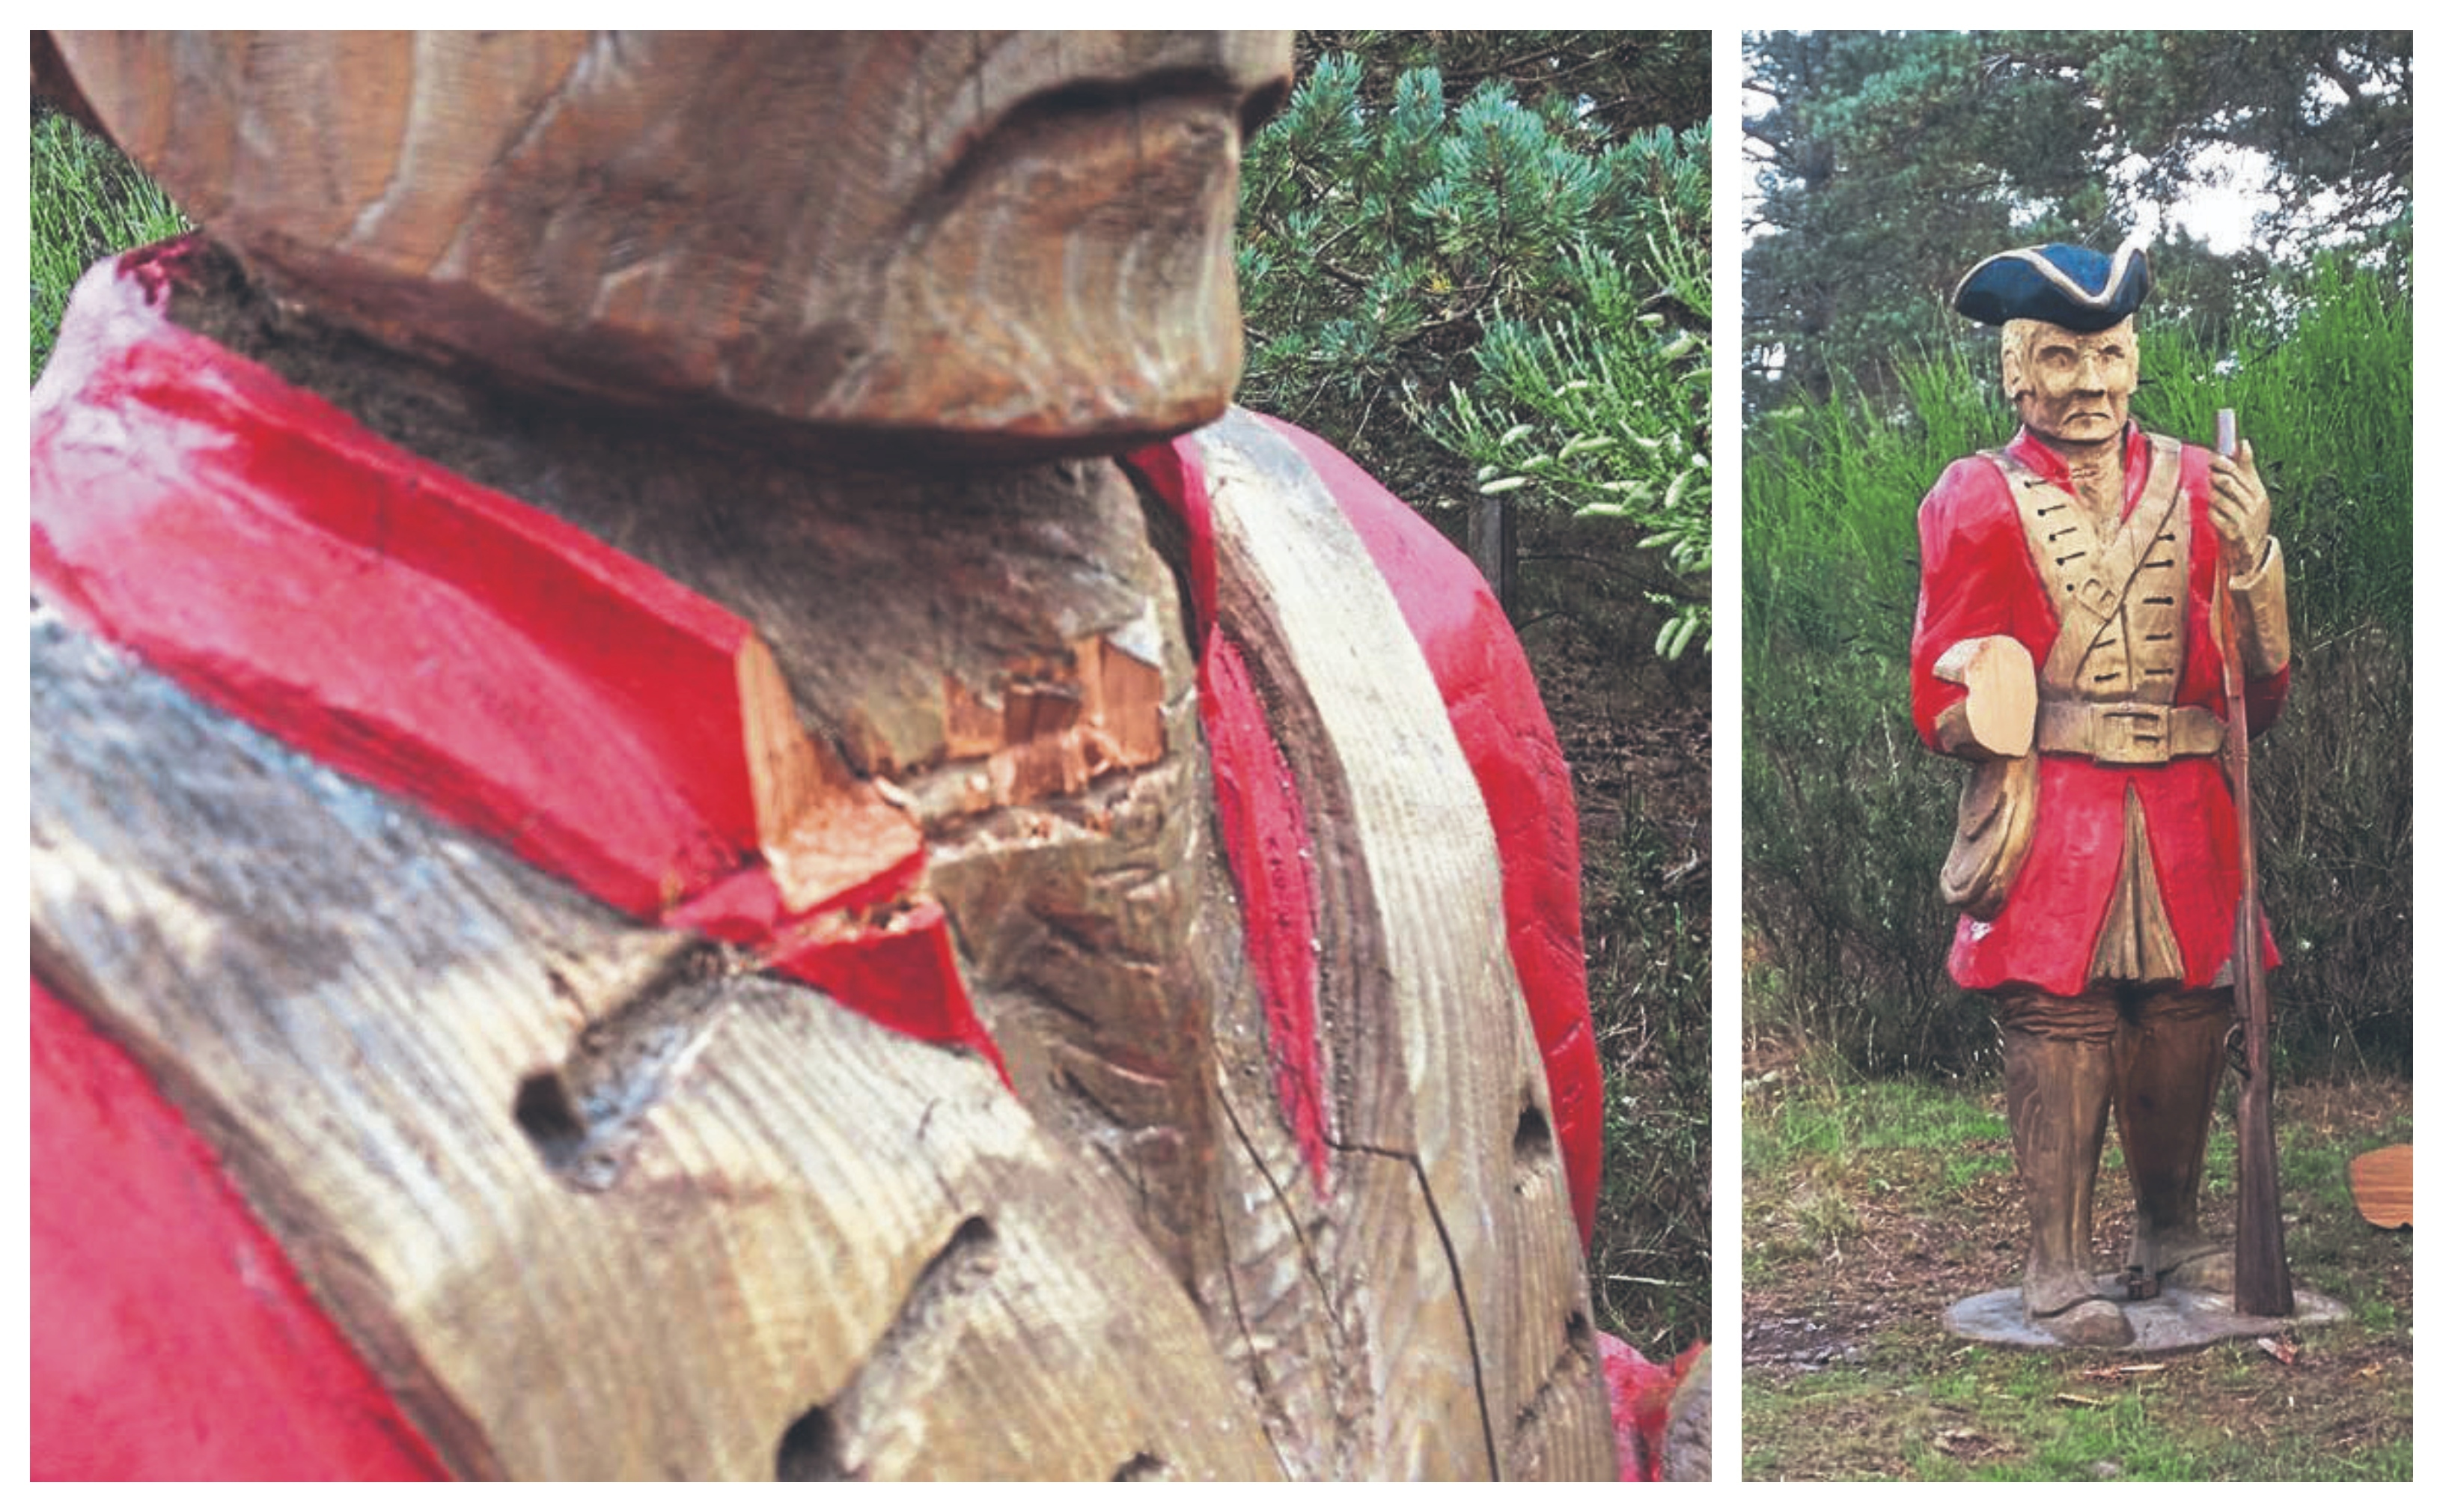 The hand of The Redcoat statue on Dava Way has been cut off and attempts to cut its head off can bee seen